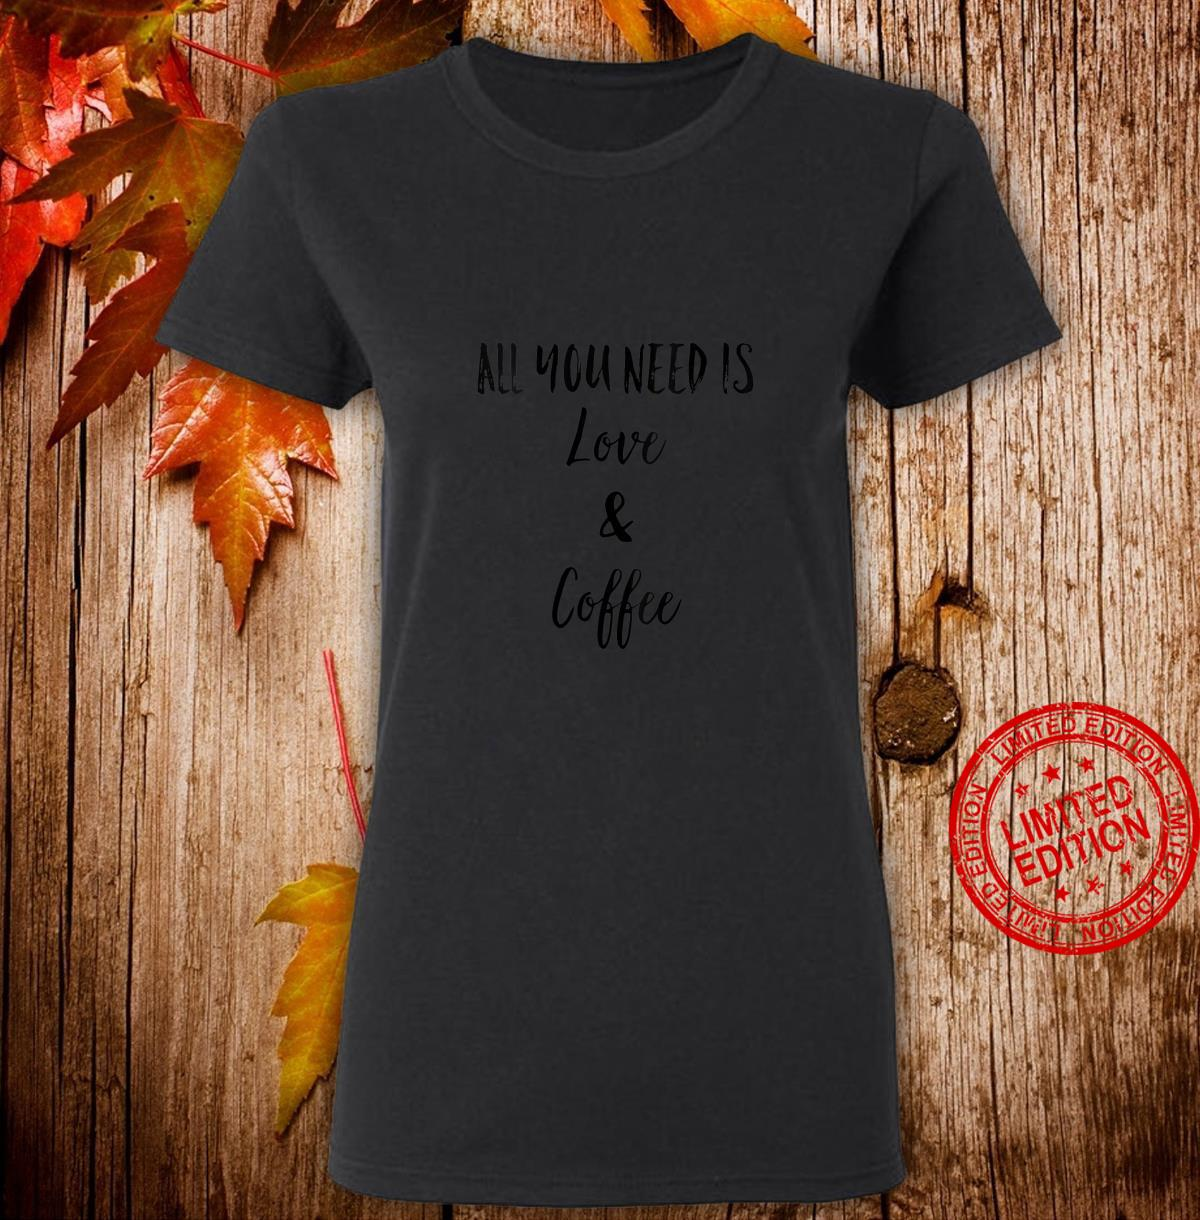 Womens All You Need is Love and Coffee Shirt,I Like You a Latte Shirt ladies tee